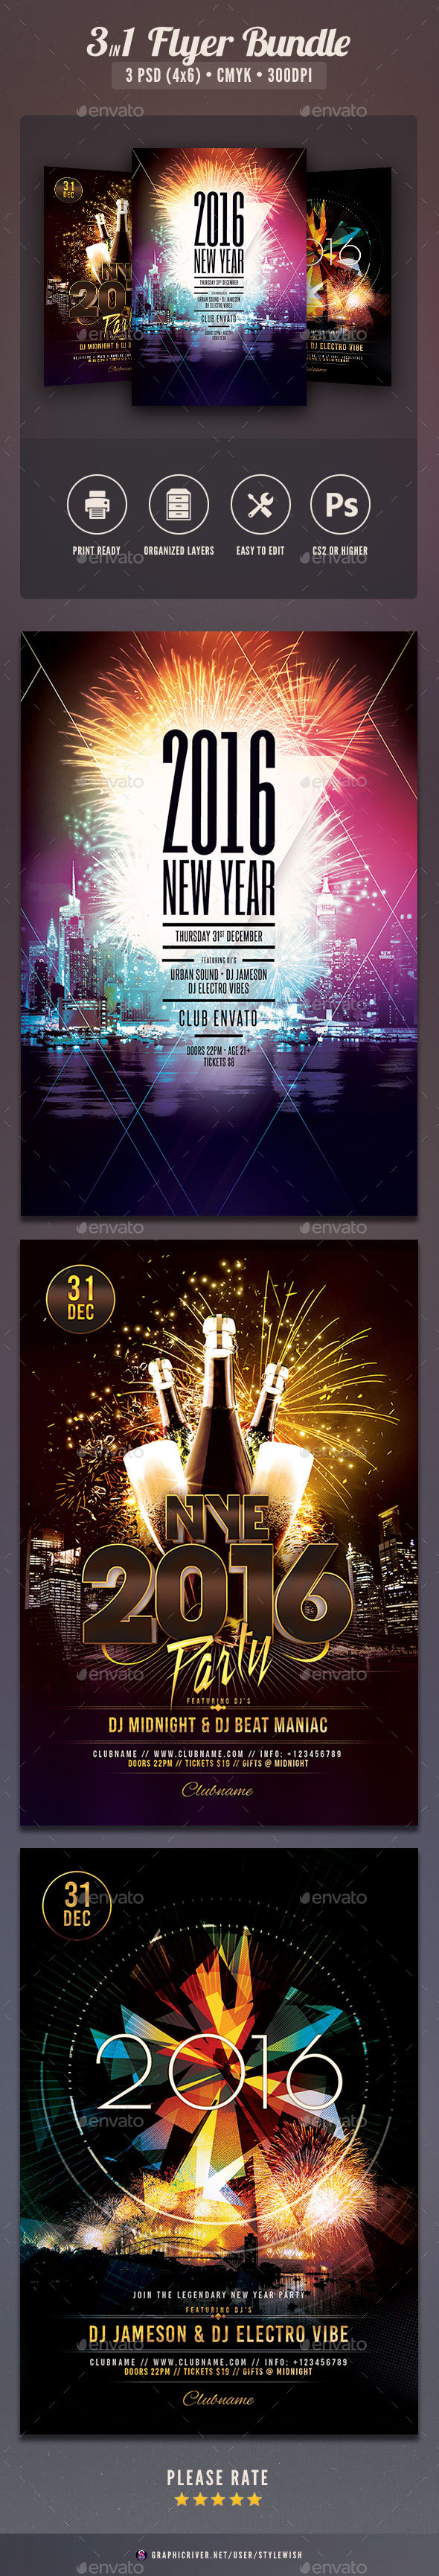 New Year Flyer Bundle Vol.05 - Clubs & Parties Events